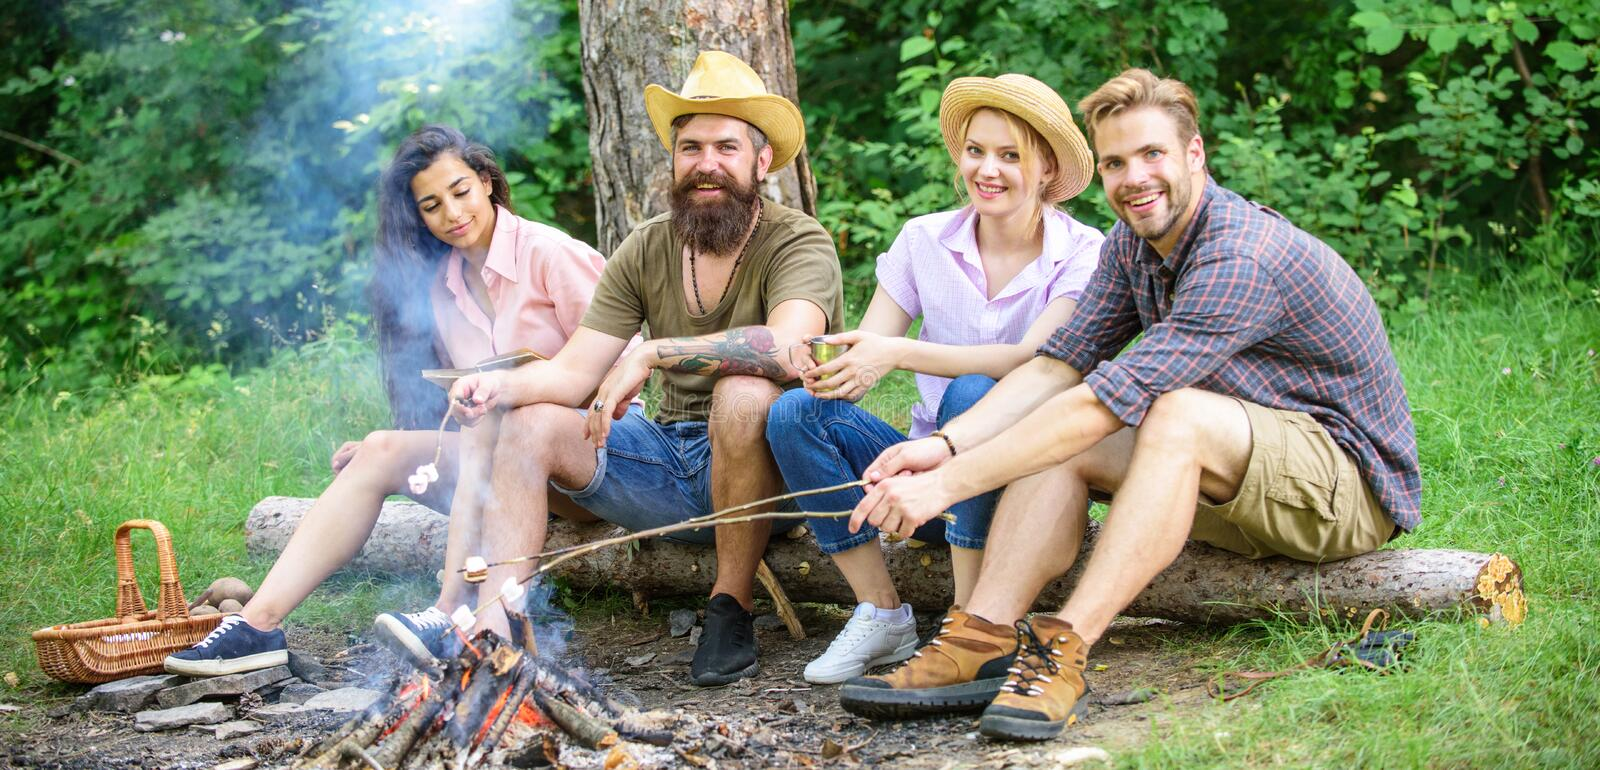 Best friends spend leisure weekend hike barbecue forest nature background. Friends enjoy weekend barbecue in forest royalty free stock image